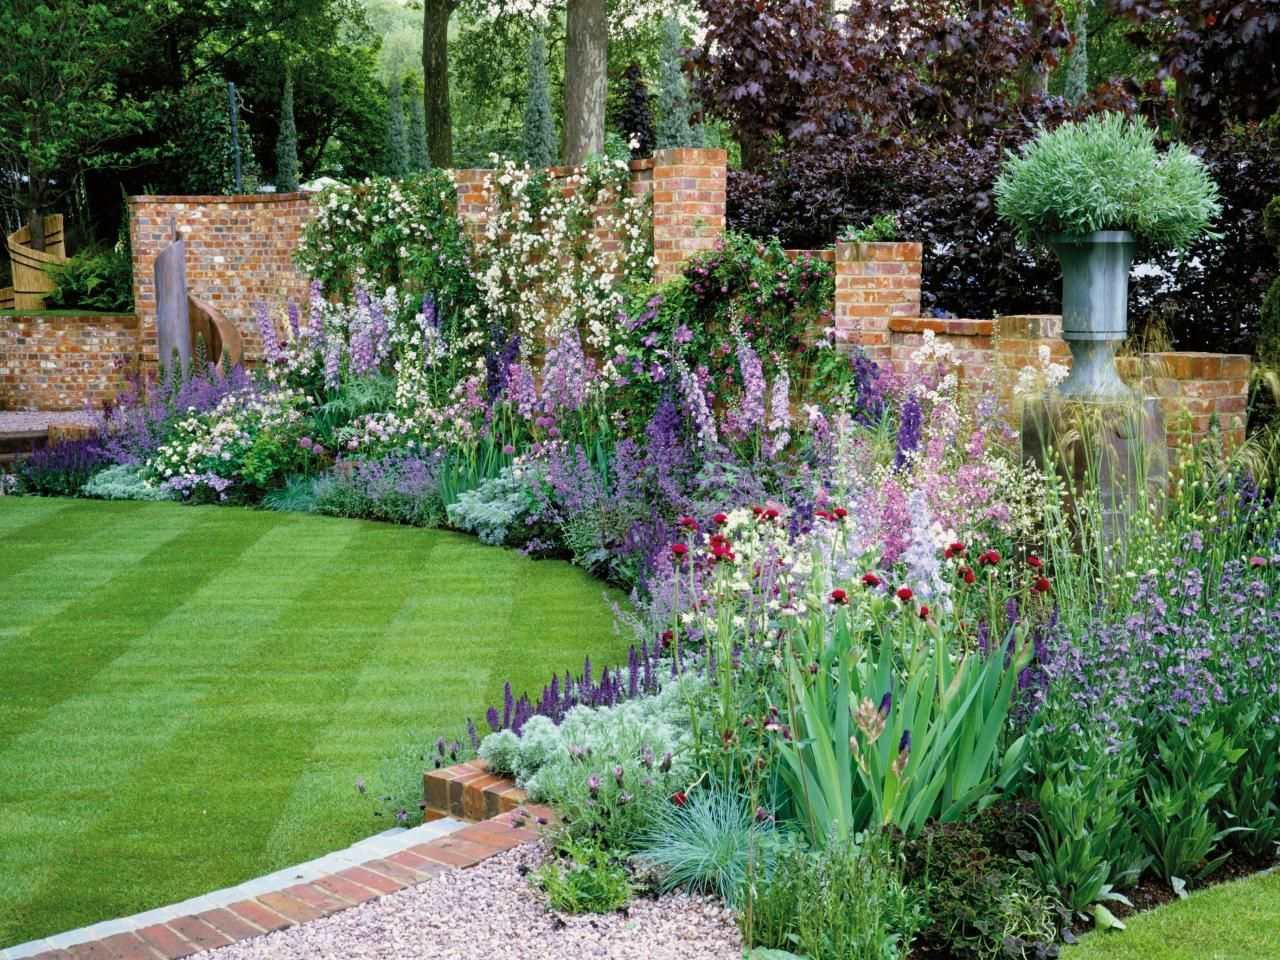 418 best ~✿ Gardens and Landscaping (Flowers) images on Pinterest ...